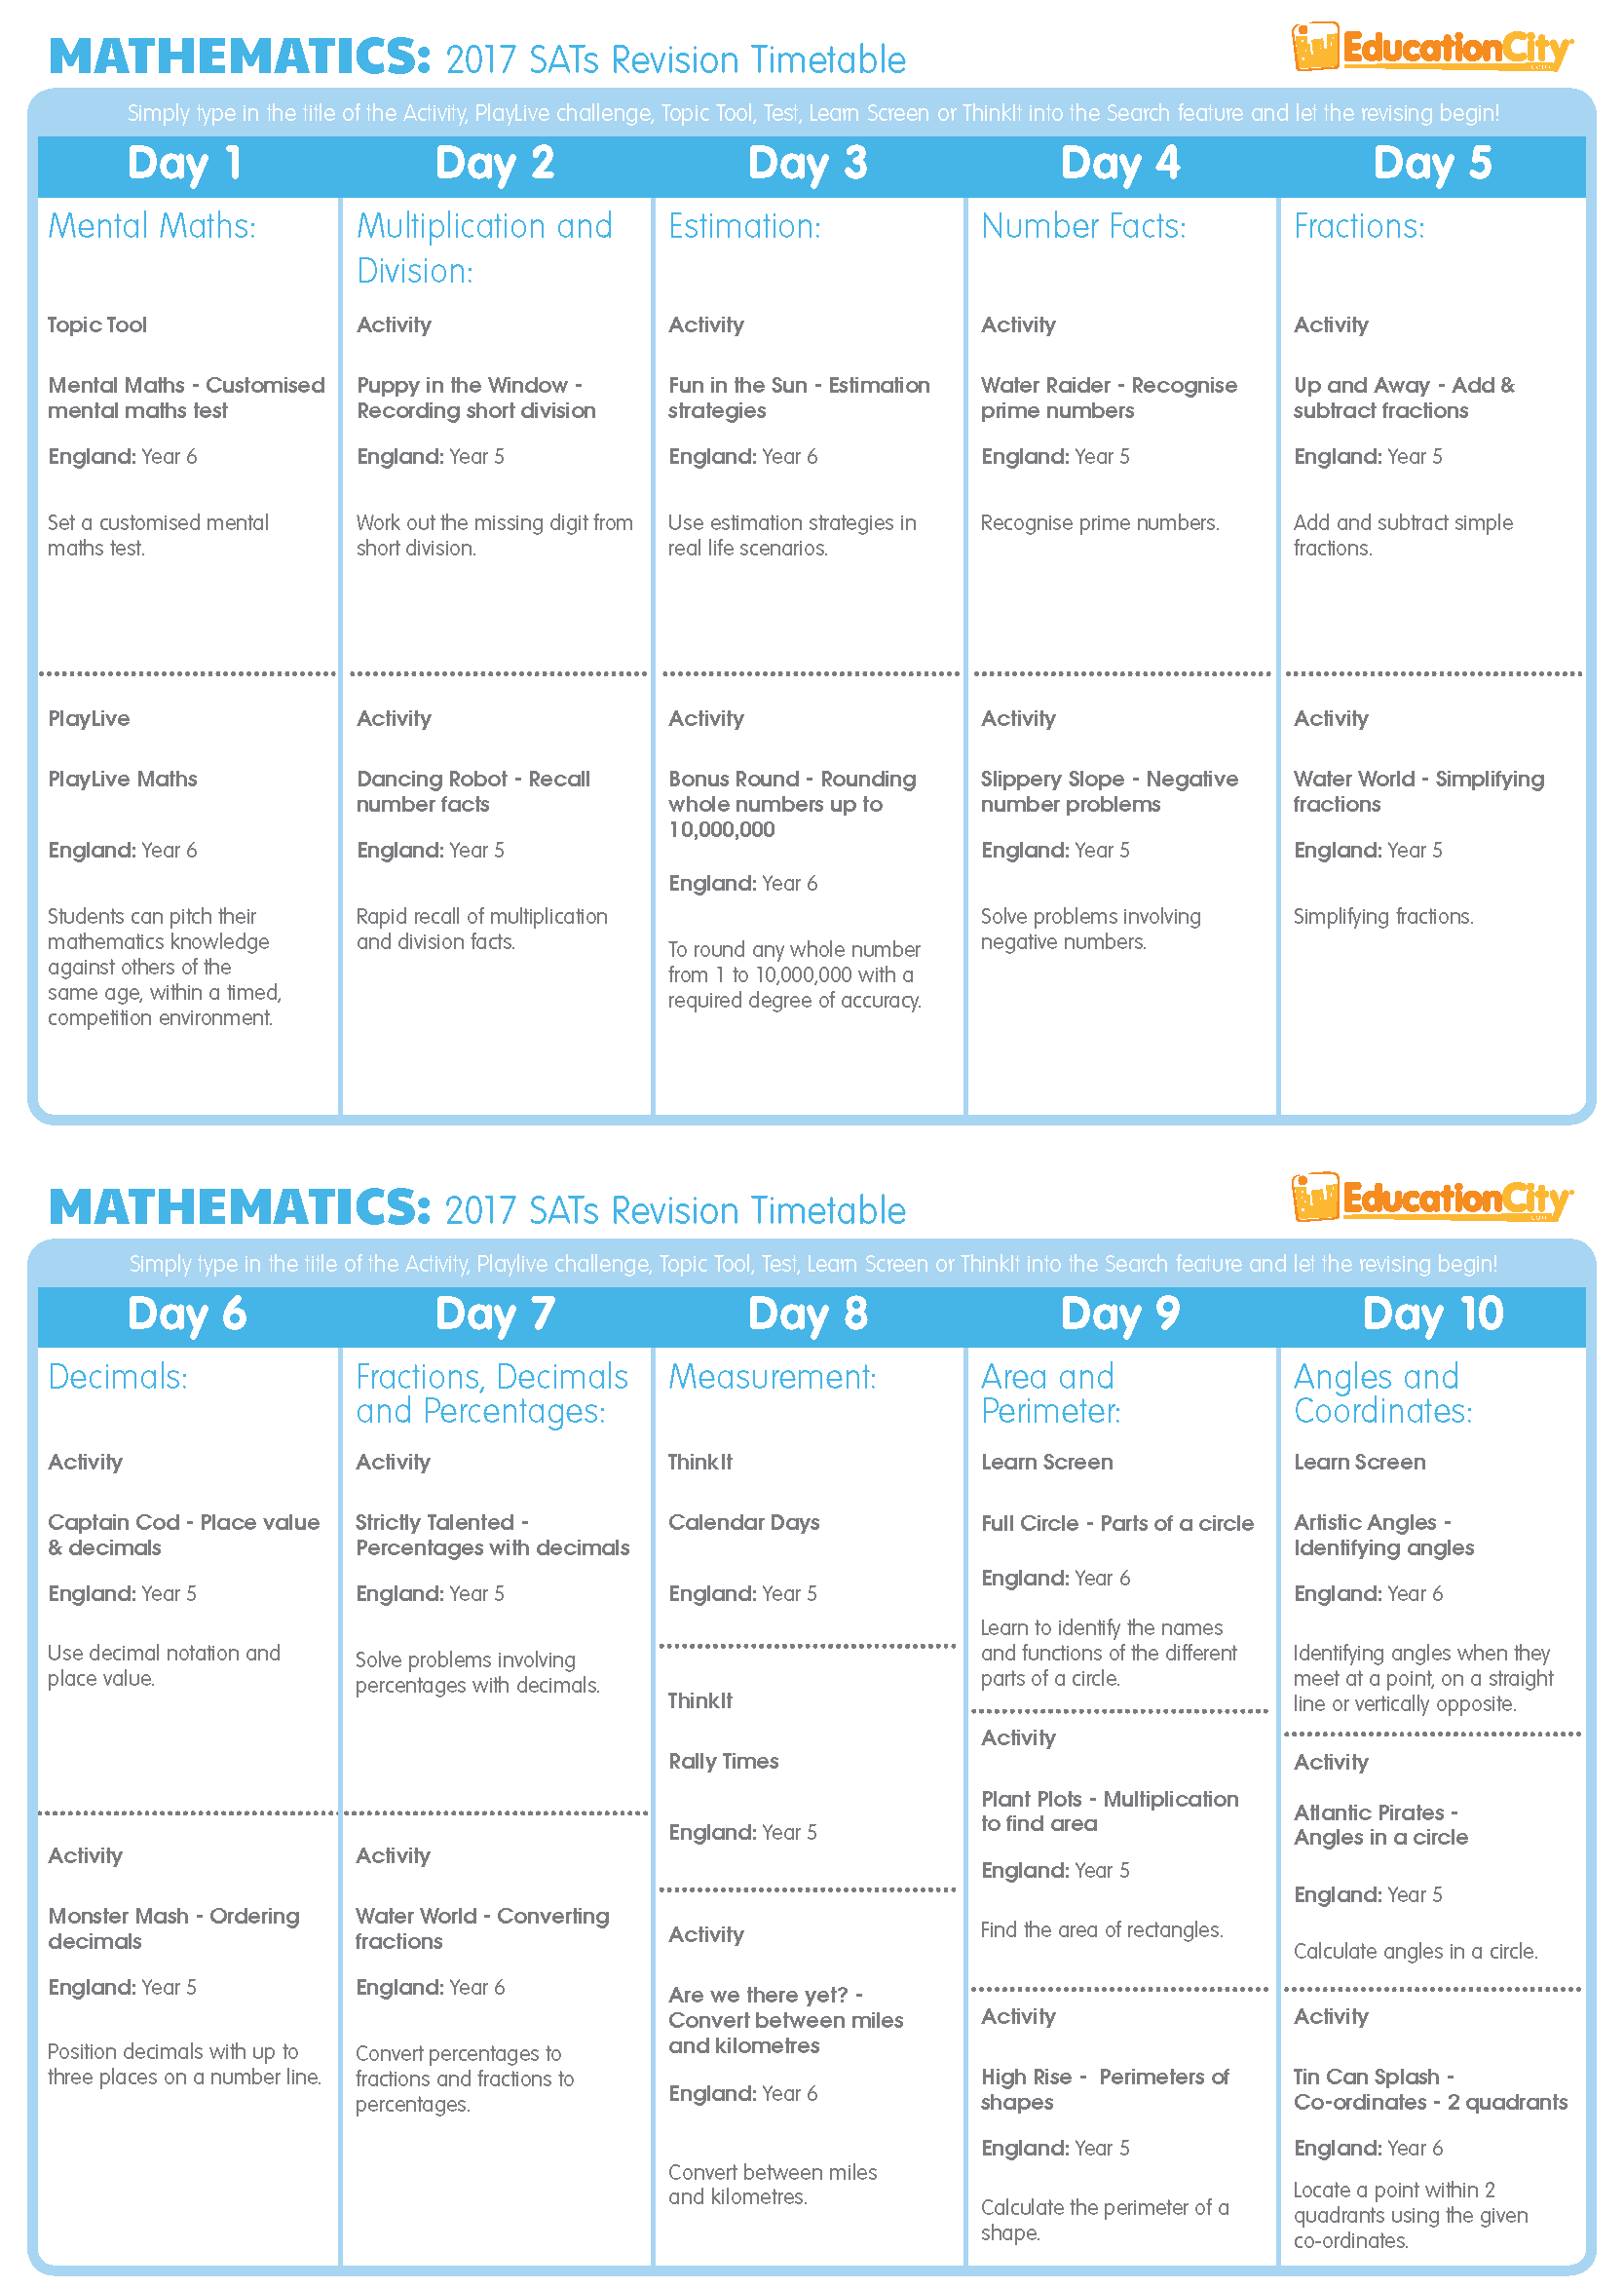 SATs timetable for Maths revision